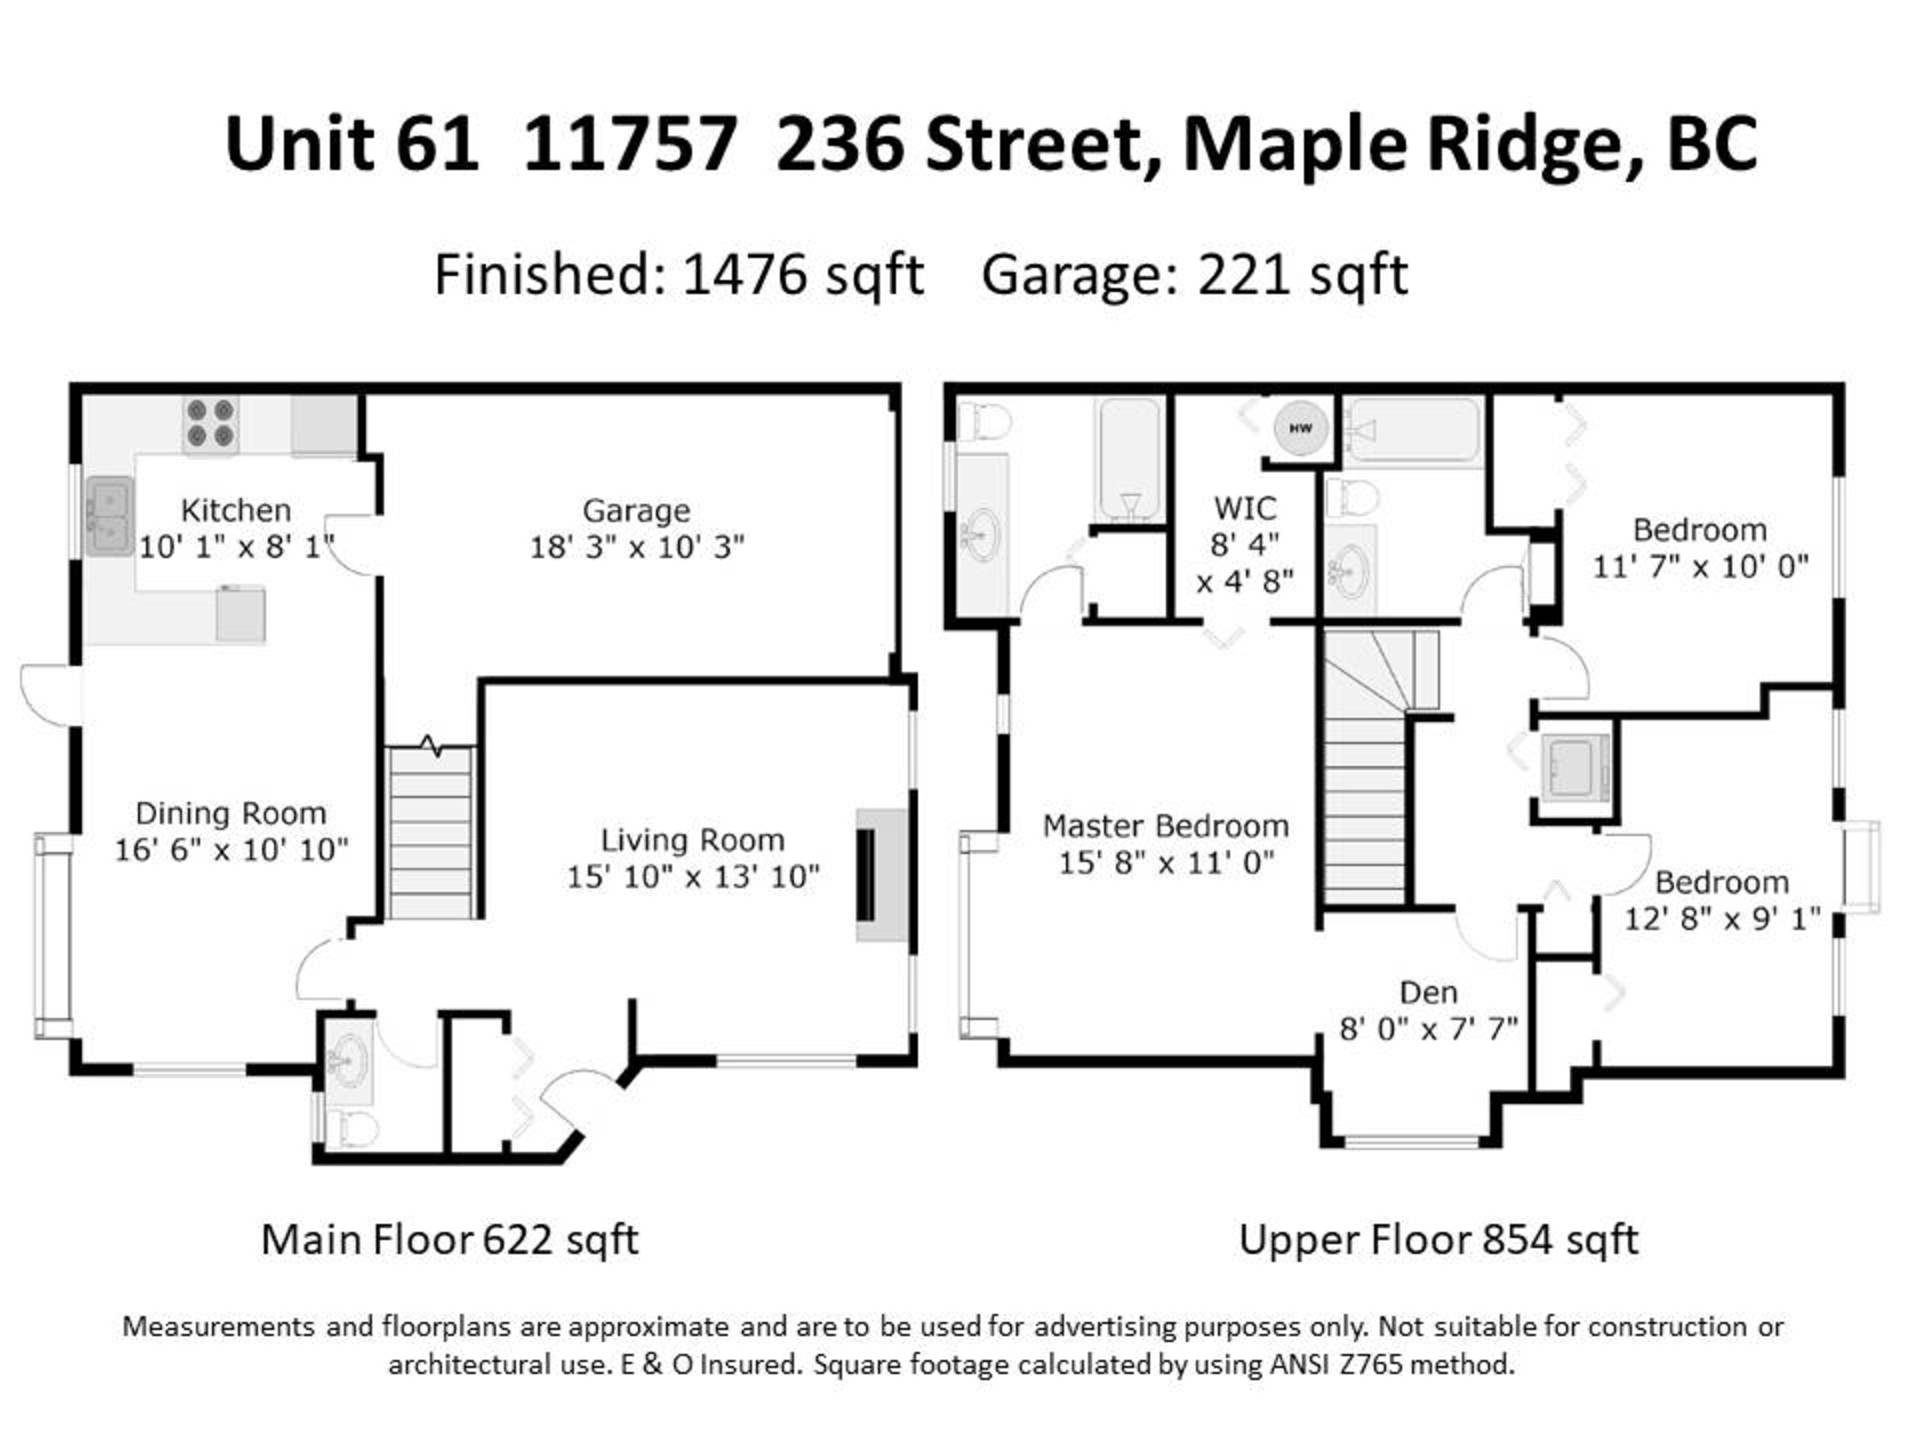 floorplan at 61 - 11757 236 Street, Cottonwood MR, Maple Ridge